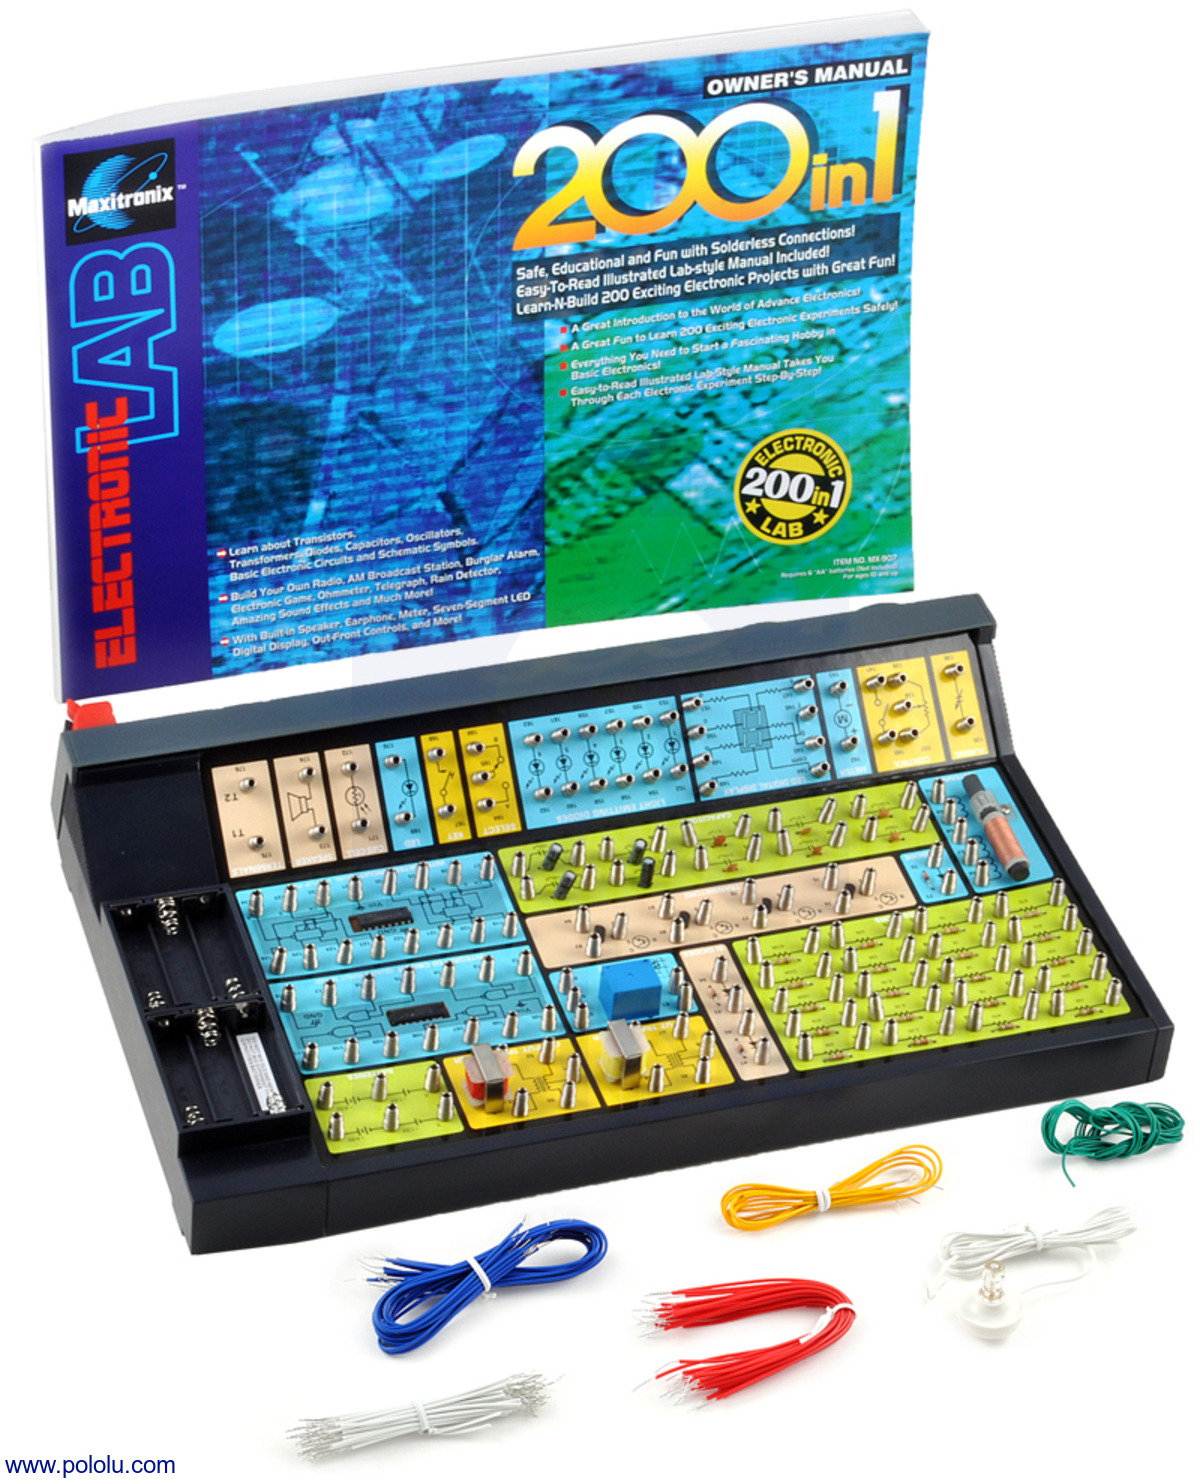 Pololu Elenco 500 In One Electronic Project Lab Snap Circuits Jr With 100 Projects Sc100 We Carry The Following Labs